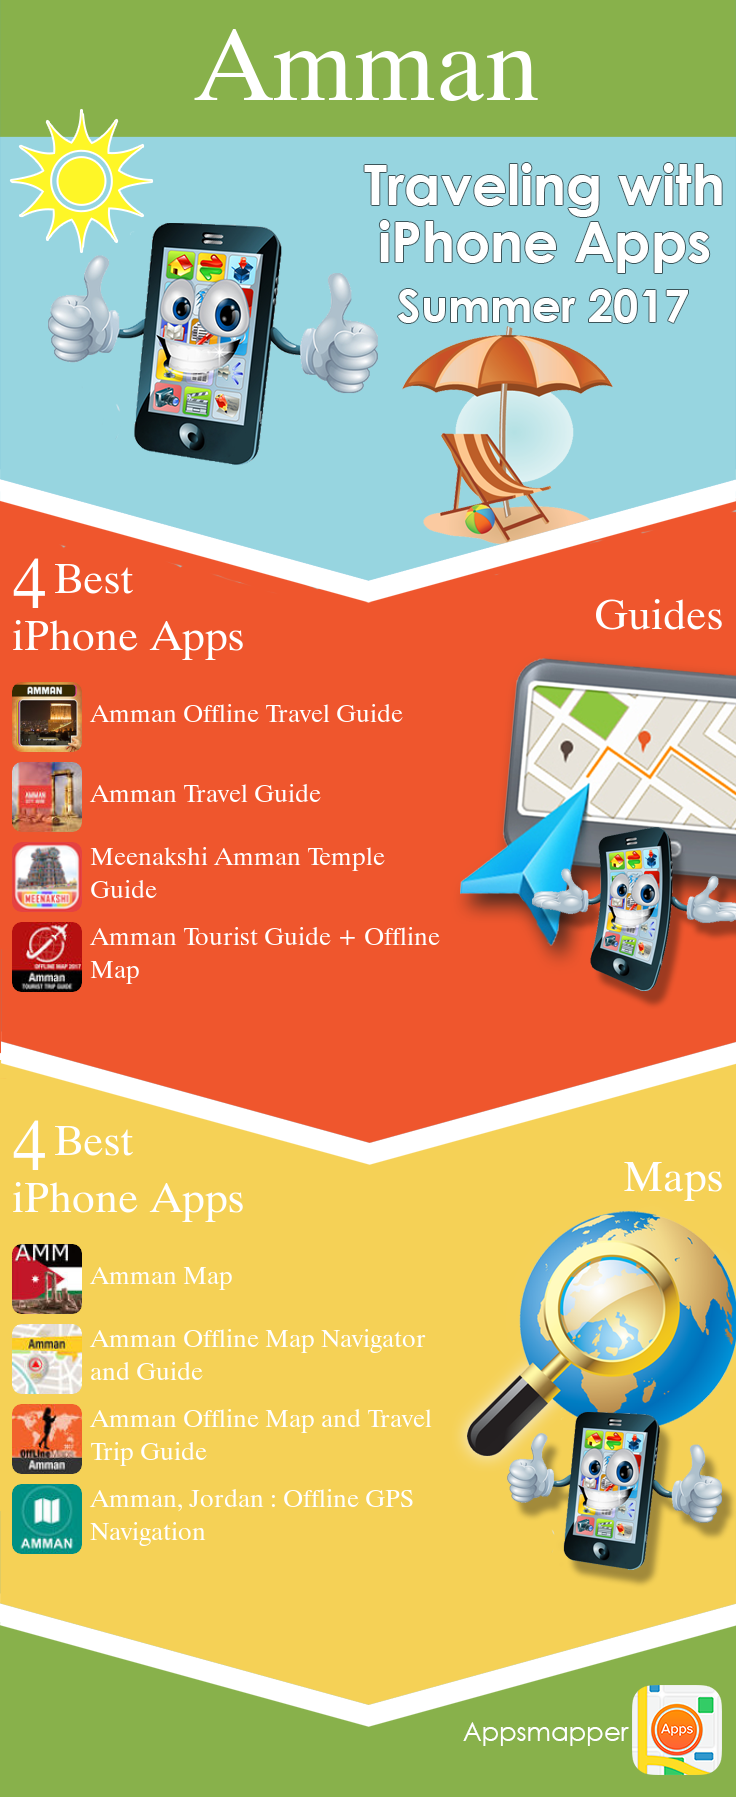 Amman Iphone Apps With Images Travel App Best Travel Apps